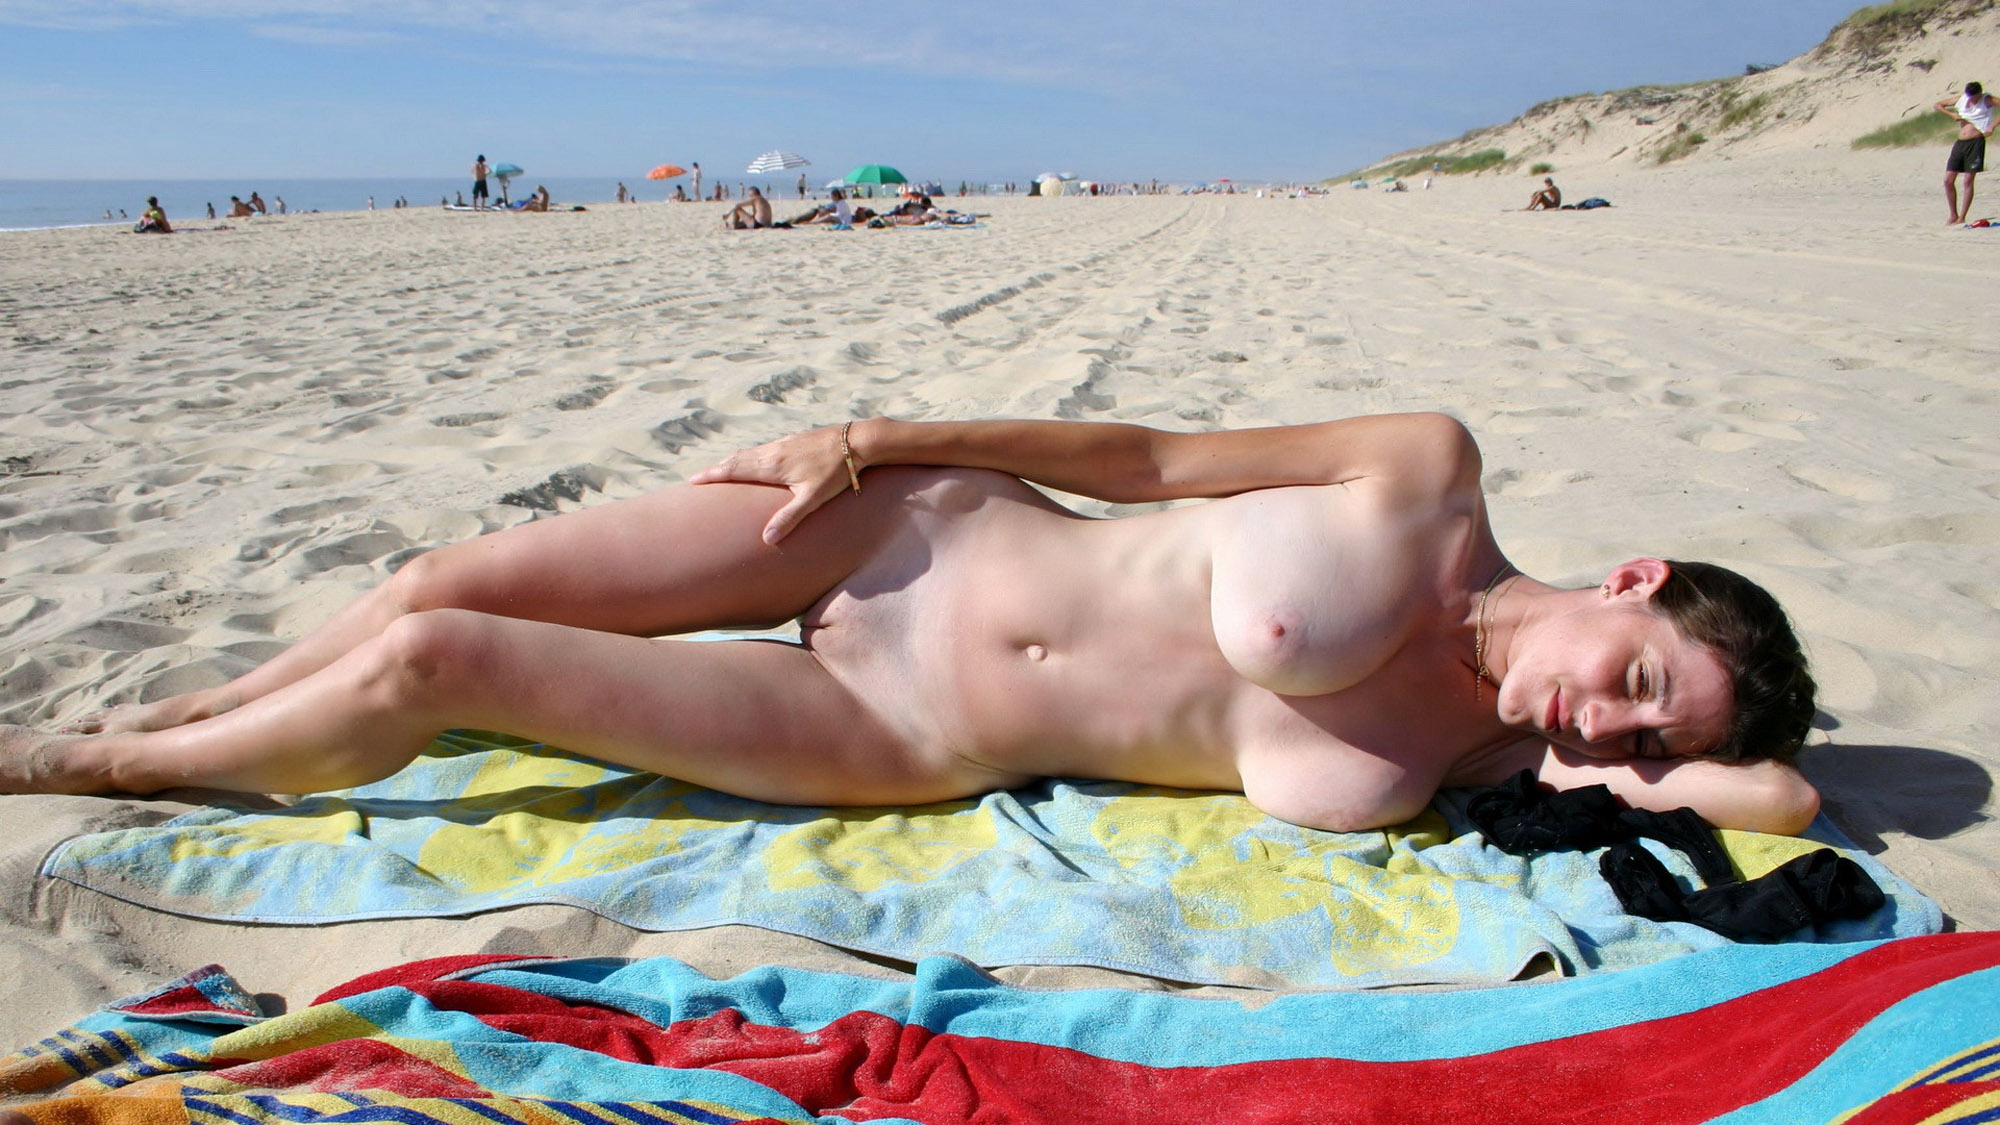 free-movies-videos-nude-beach-britney-spears-loses-leotard